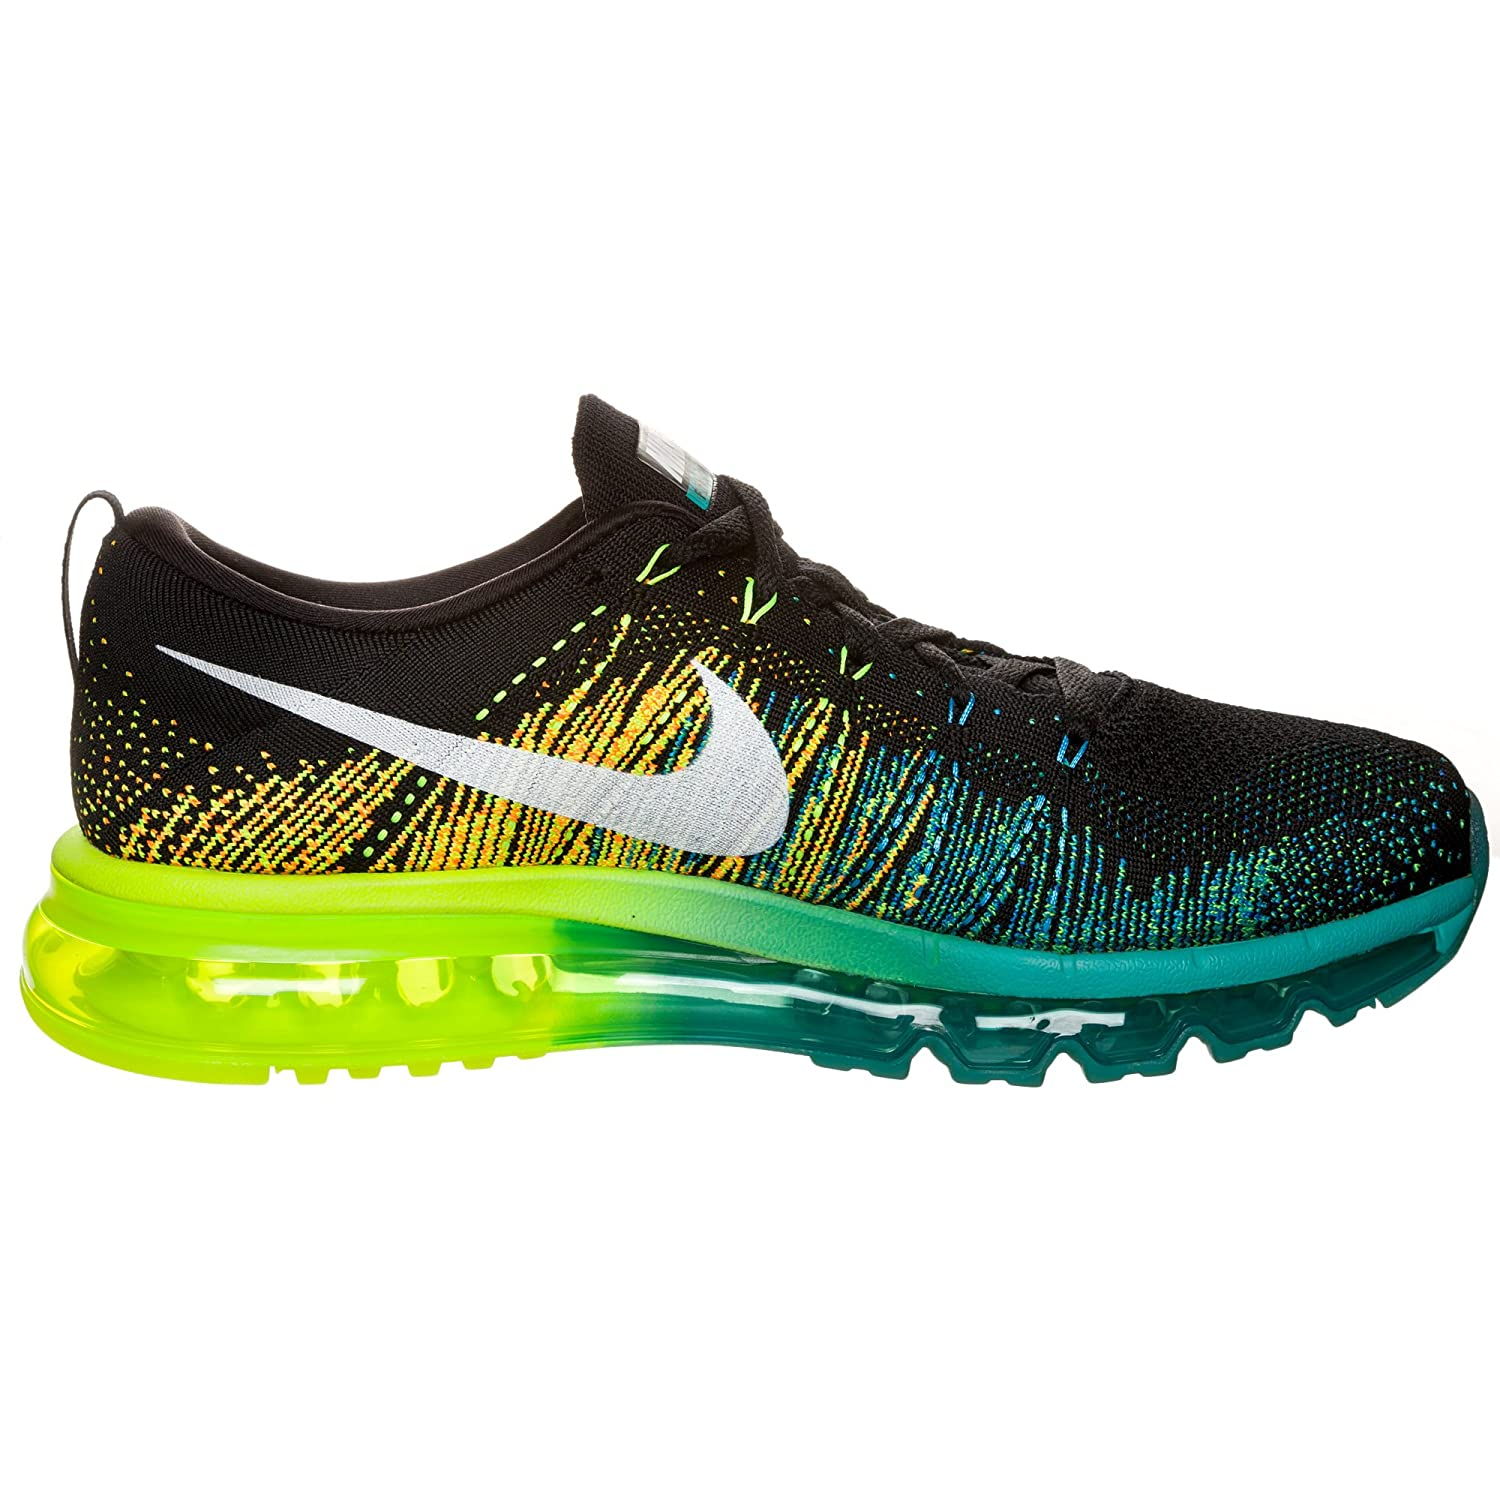 Nike Flyknit Max Men's Running Shoes